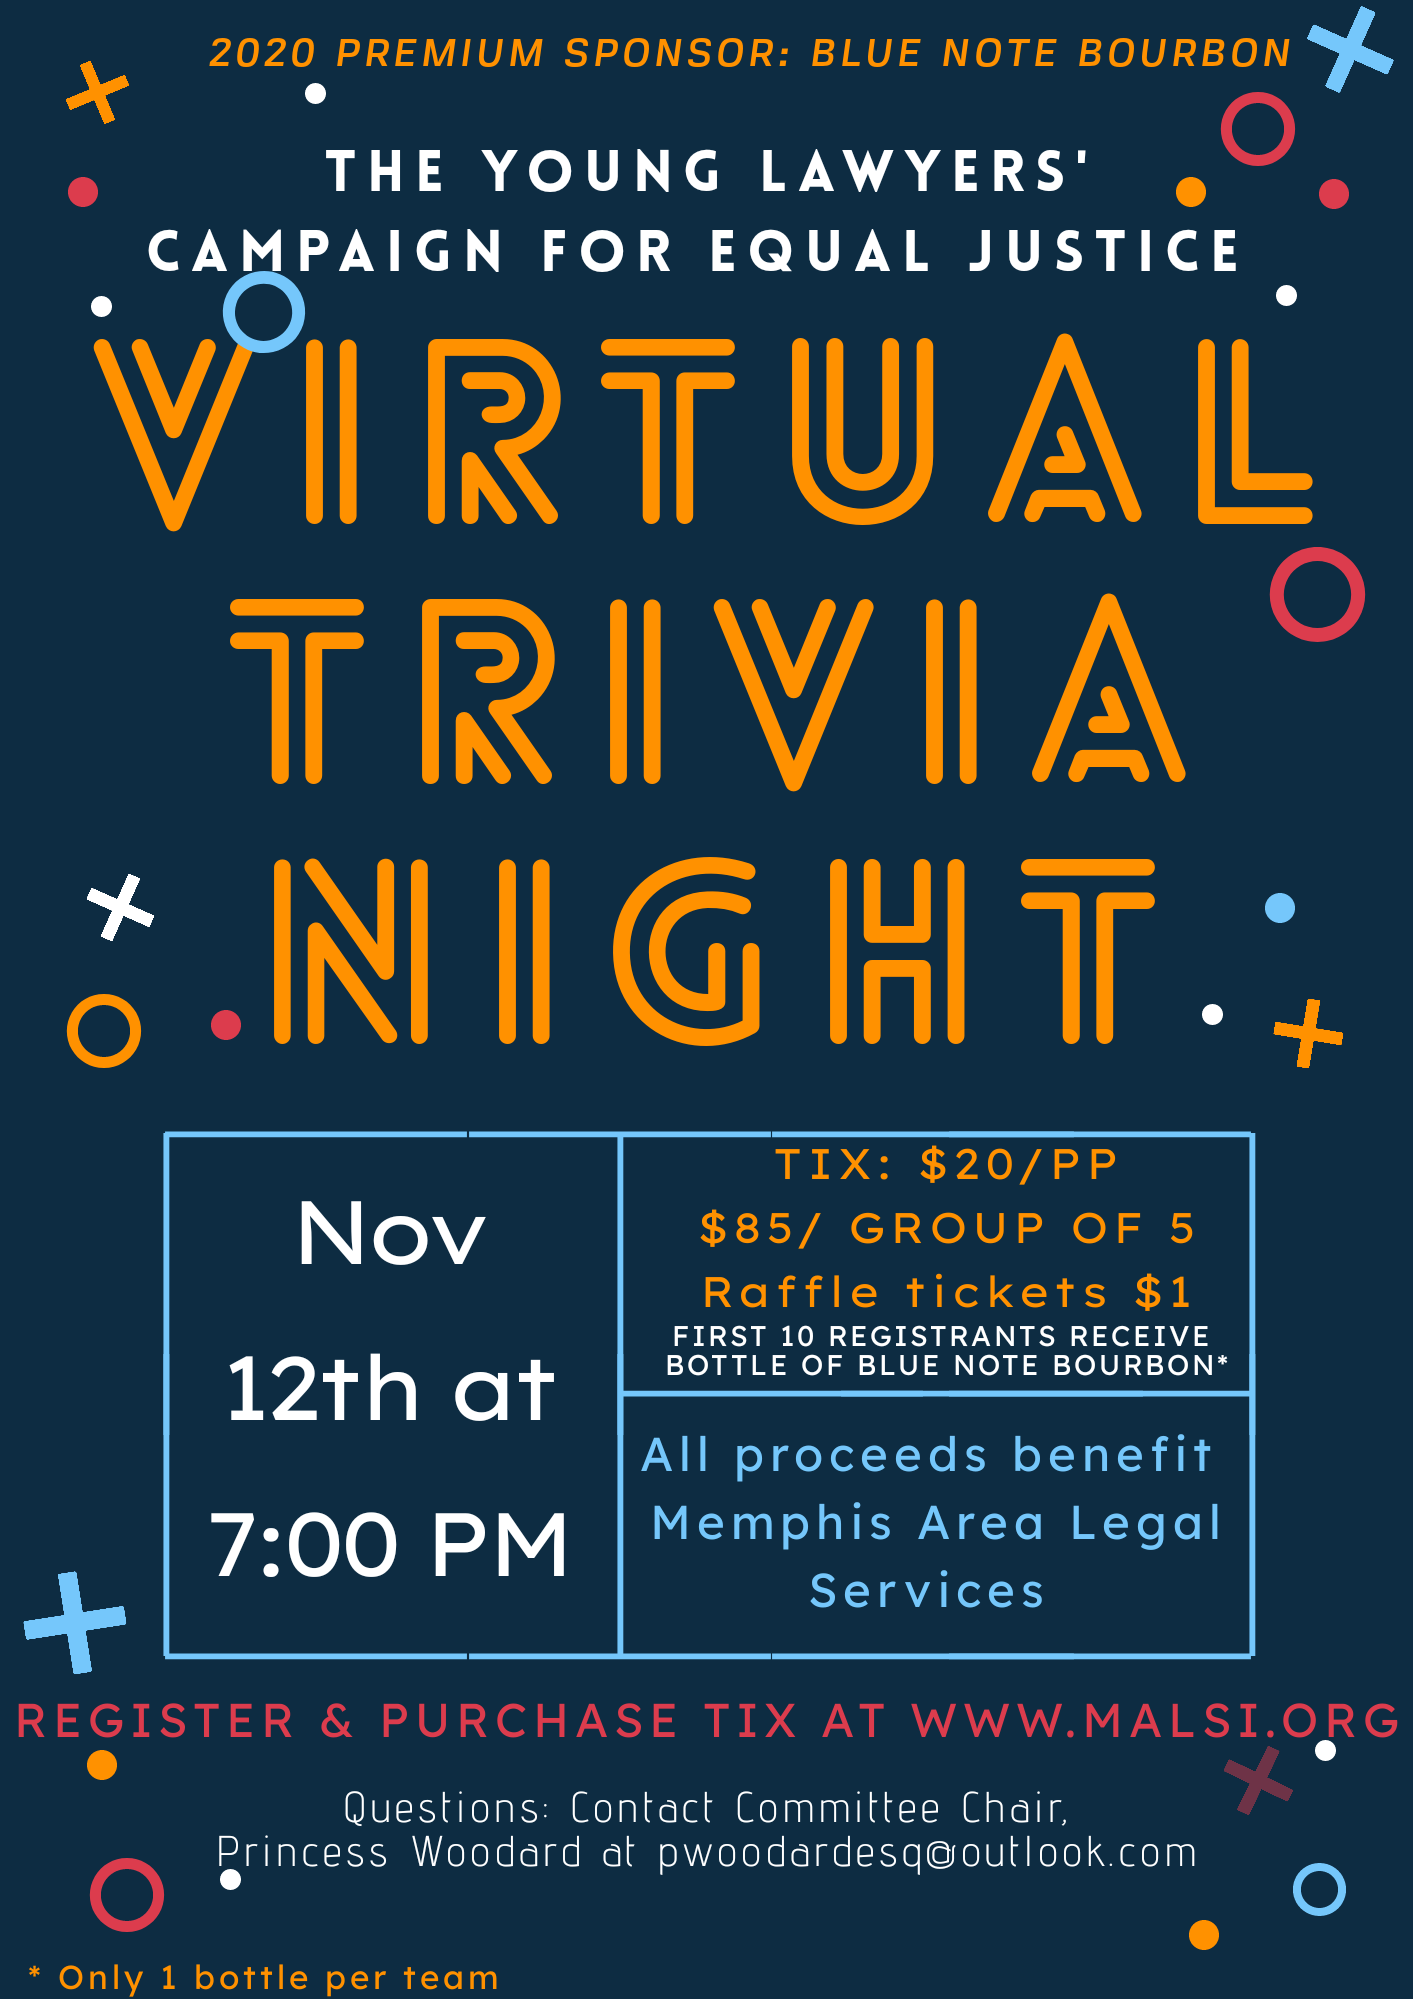 YLD Virtual Trivia Night image